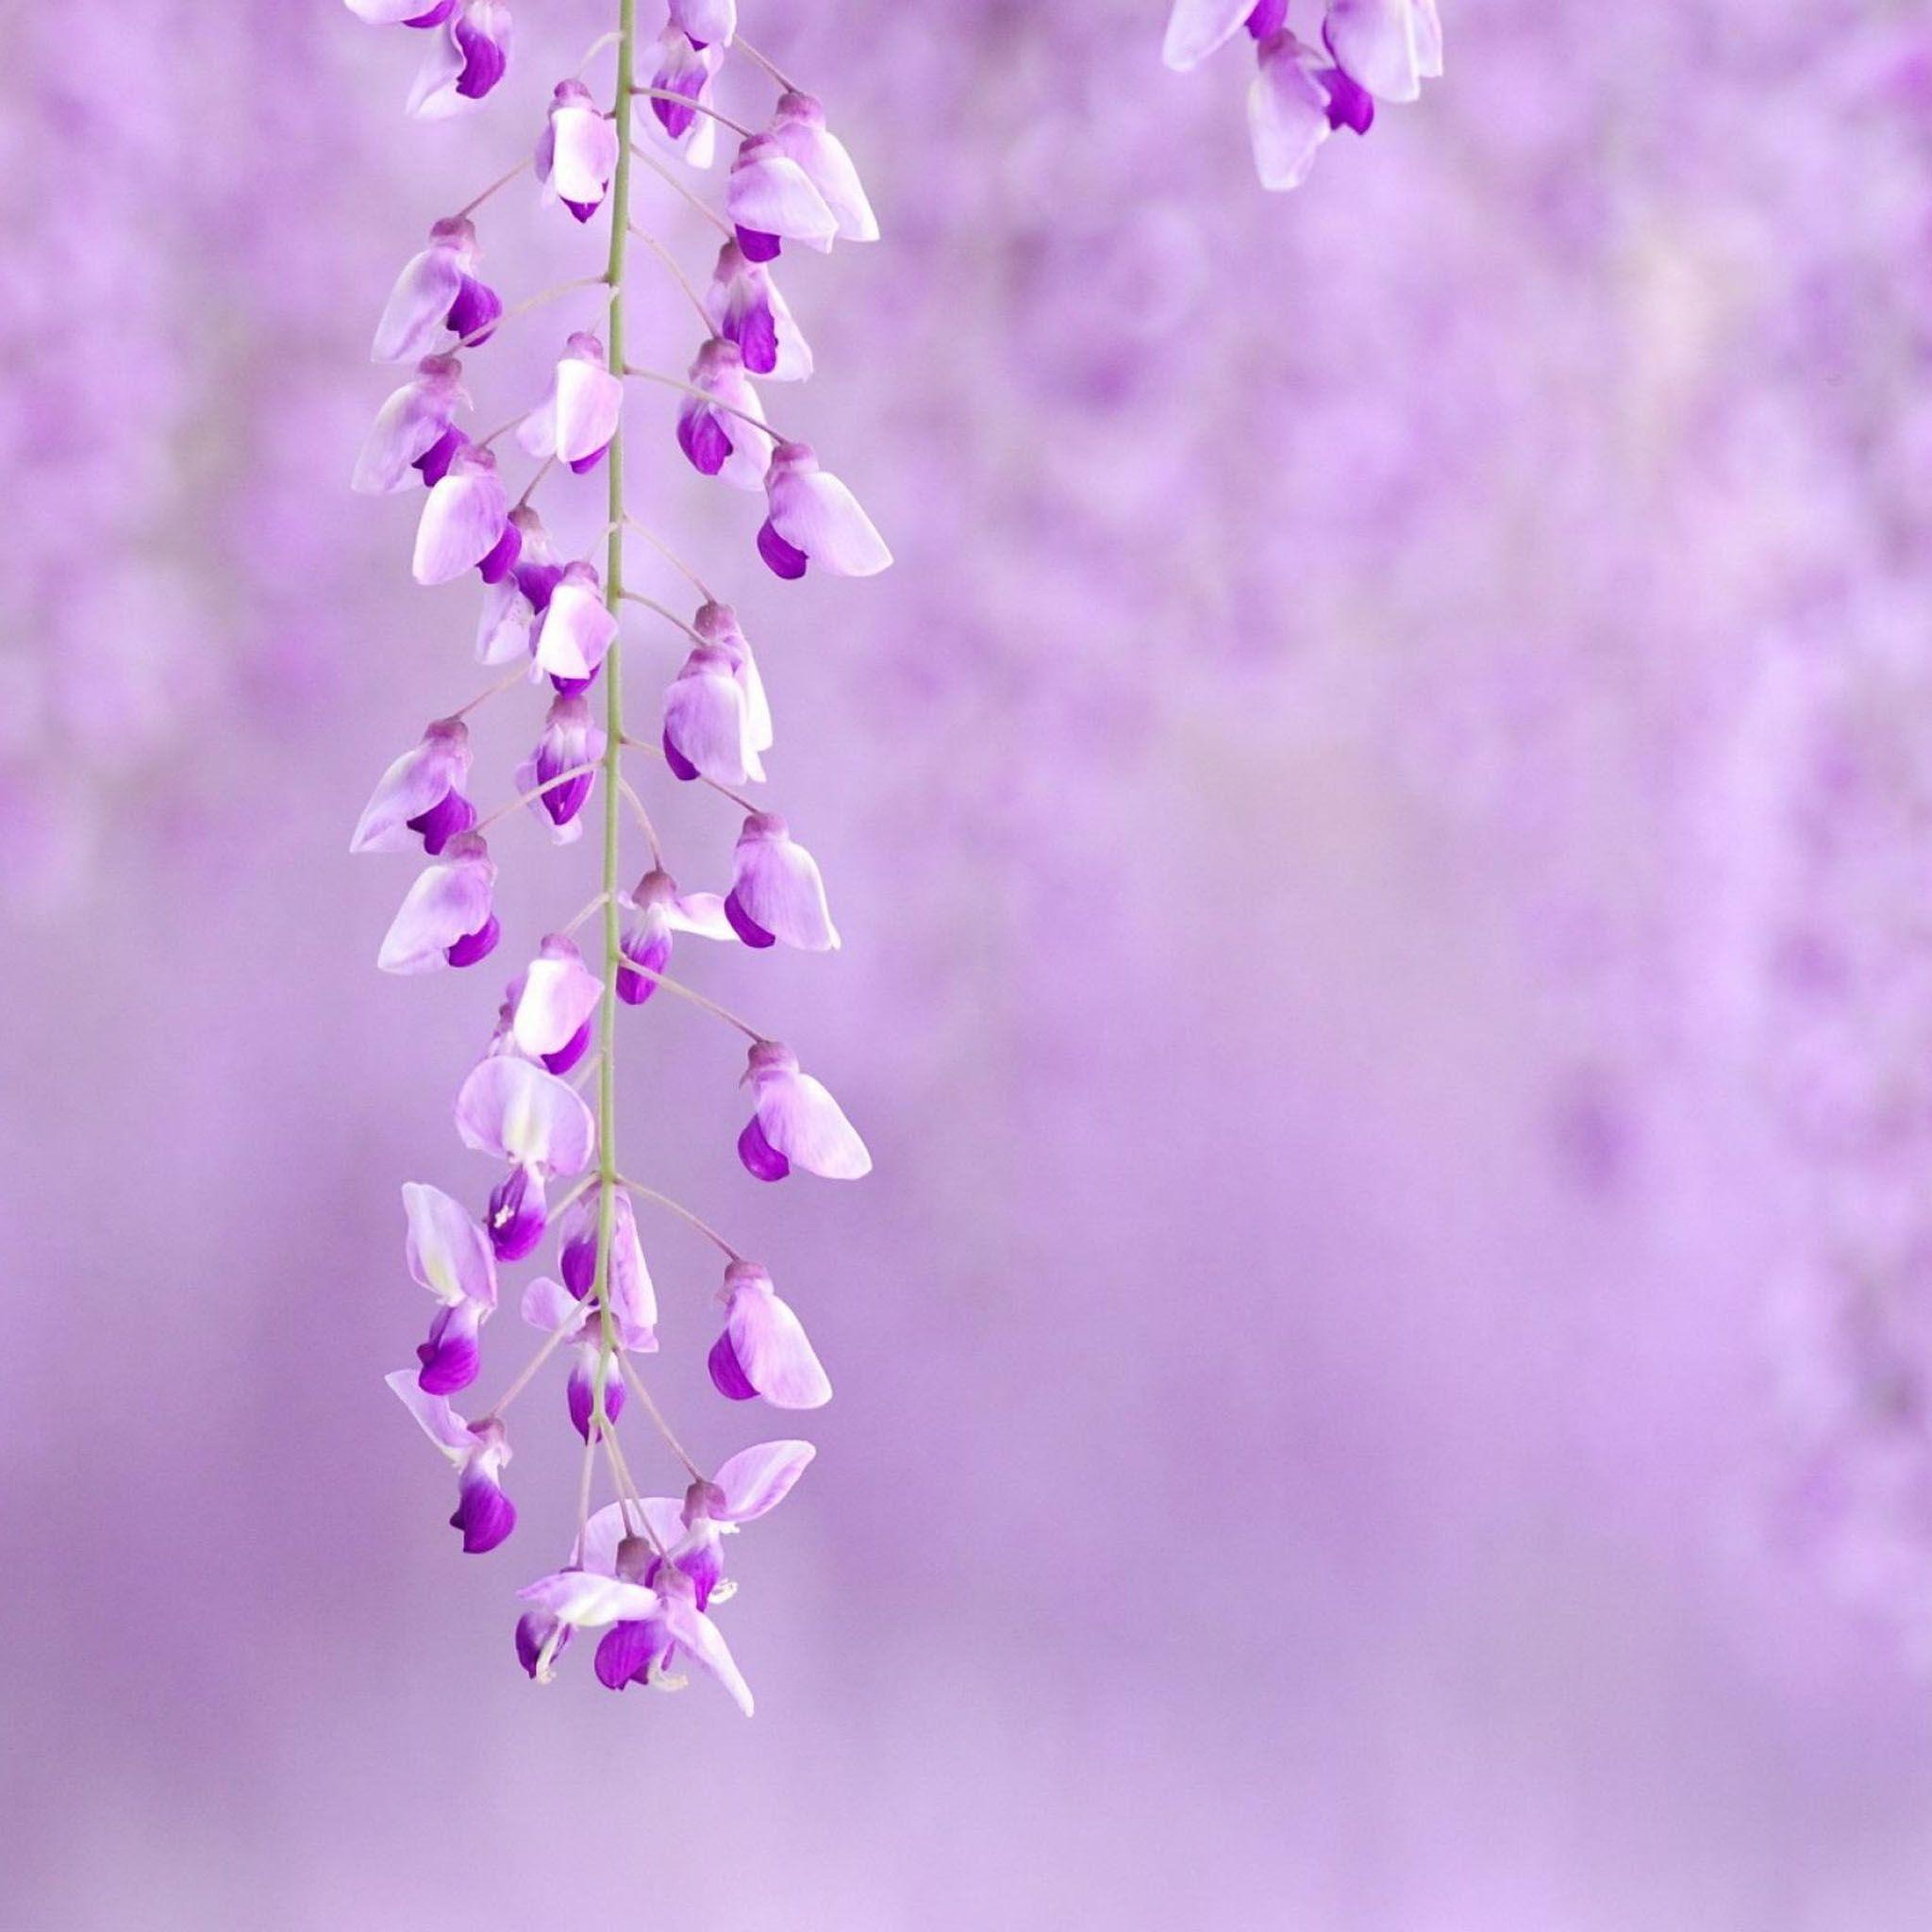 Wallpapers For > Light Purple Flower Background